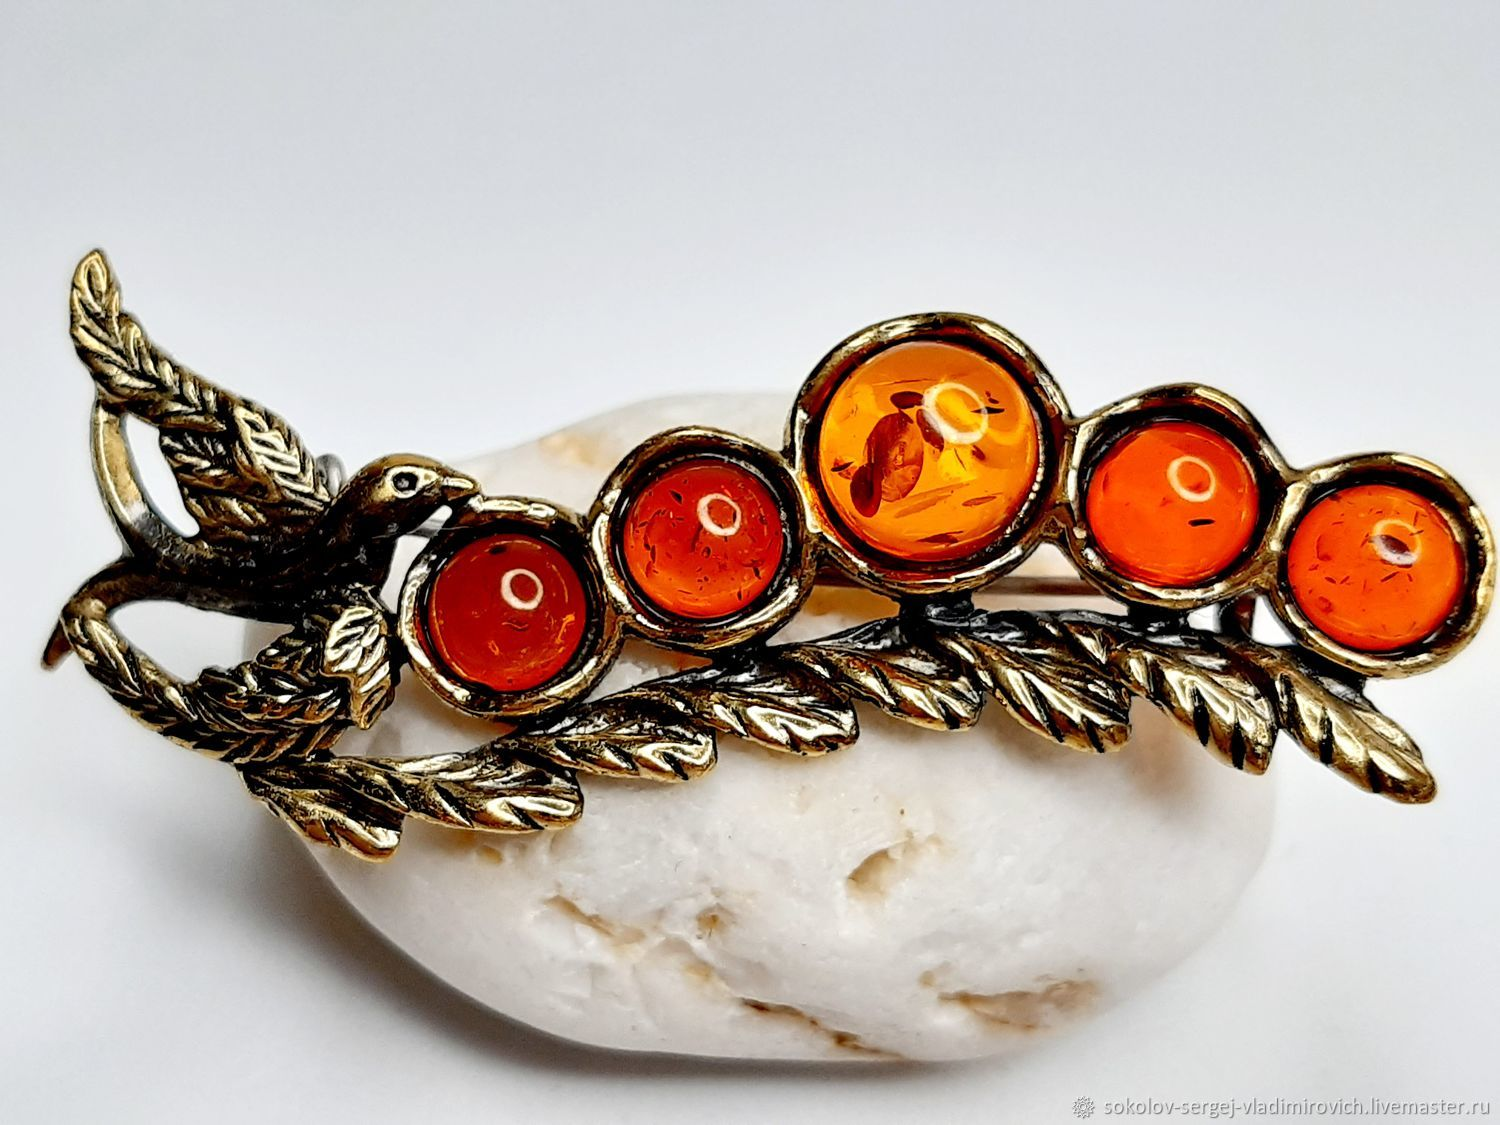 The brooch is a Sprig of Currant with a bird, Brooches, Moscow,  Фото №1